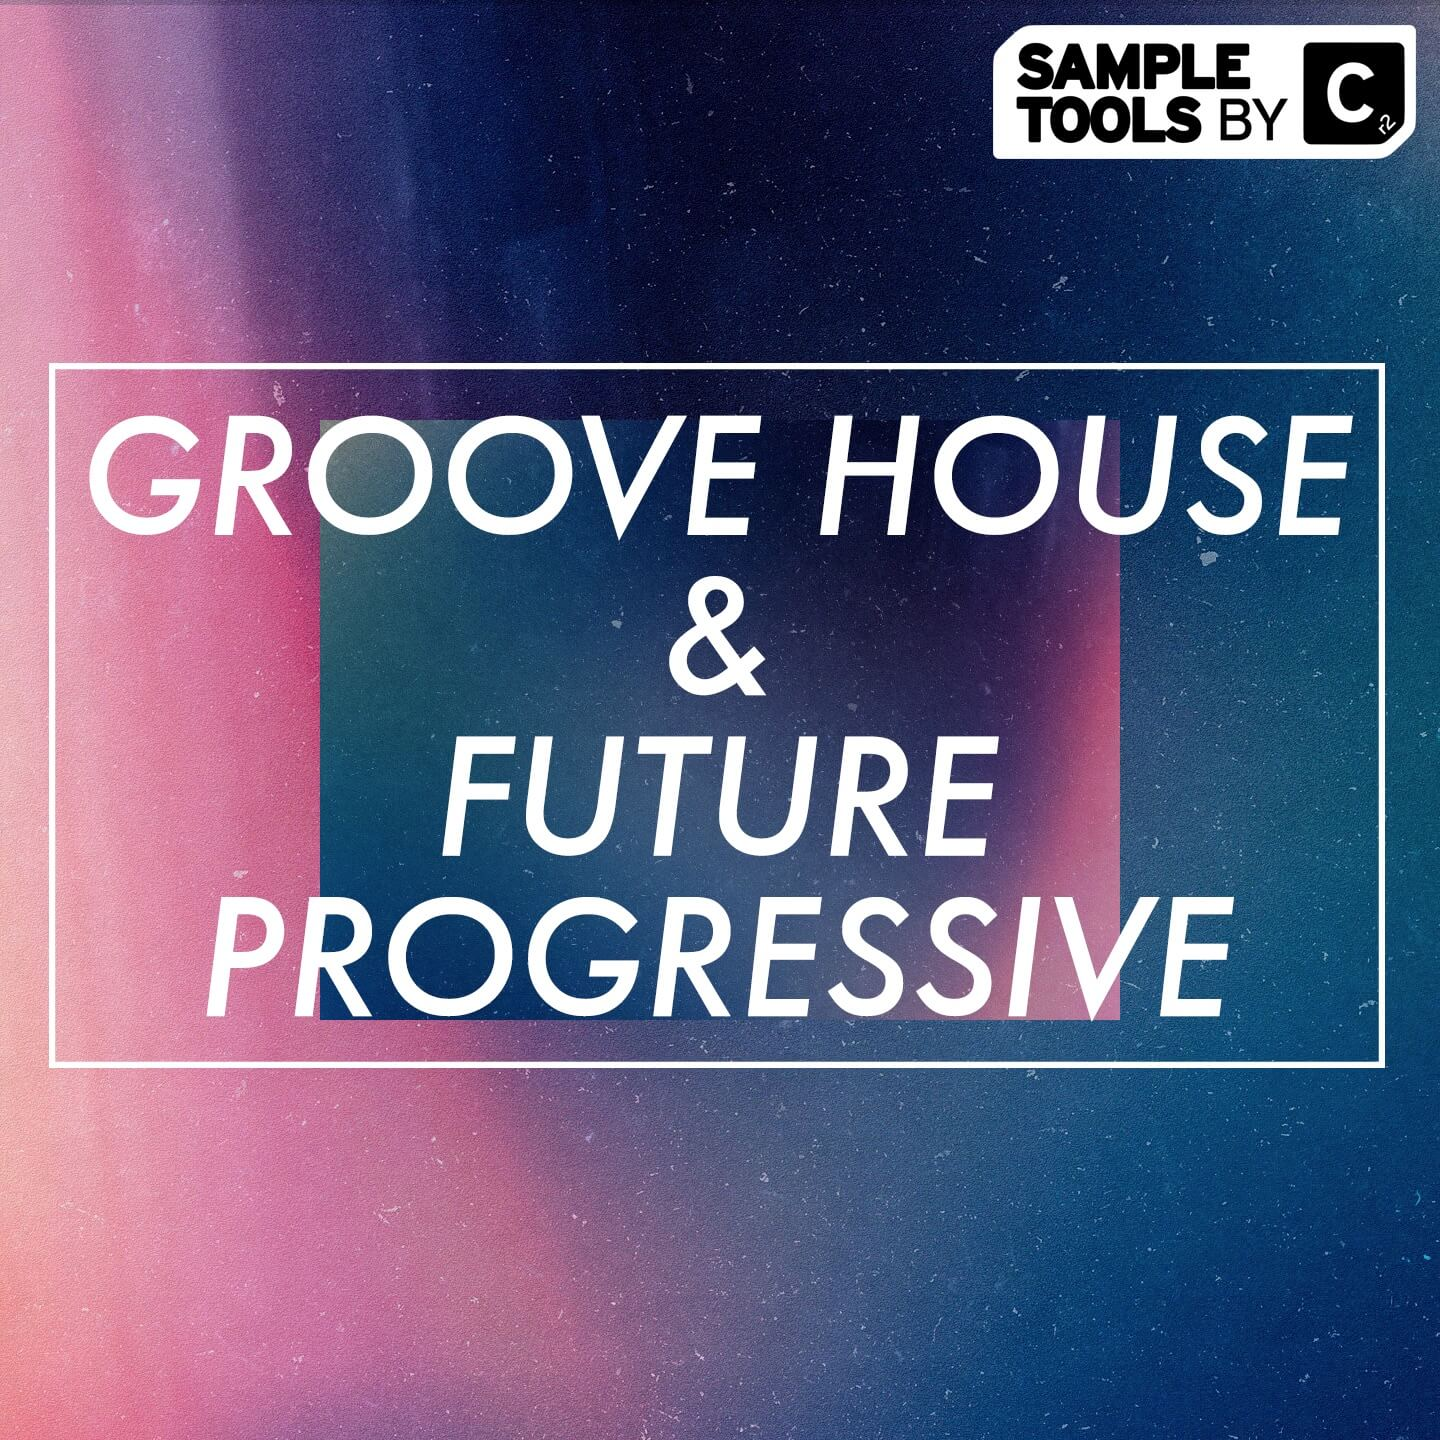 Win groove house future progressive by sample tools by cr2 for Groove house music